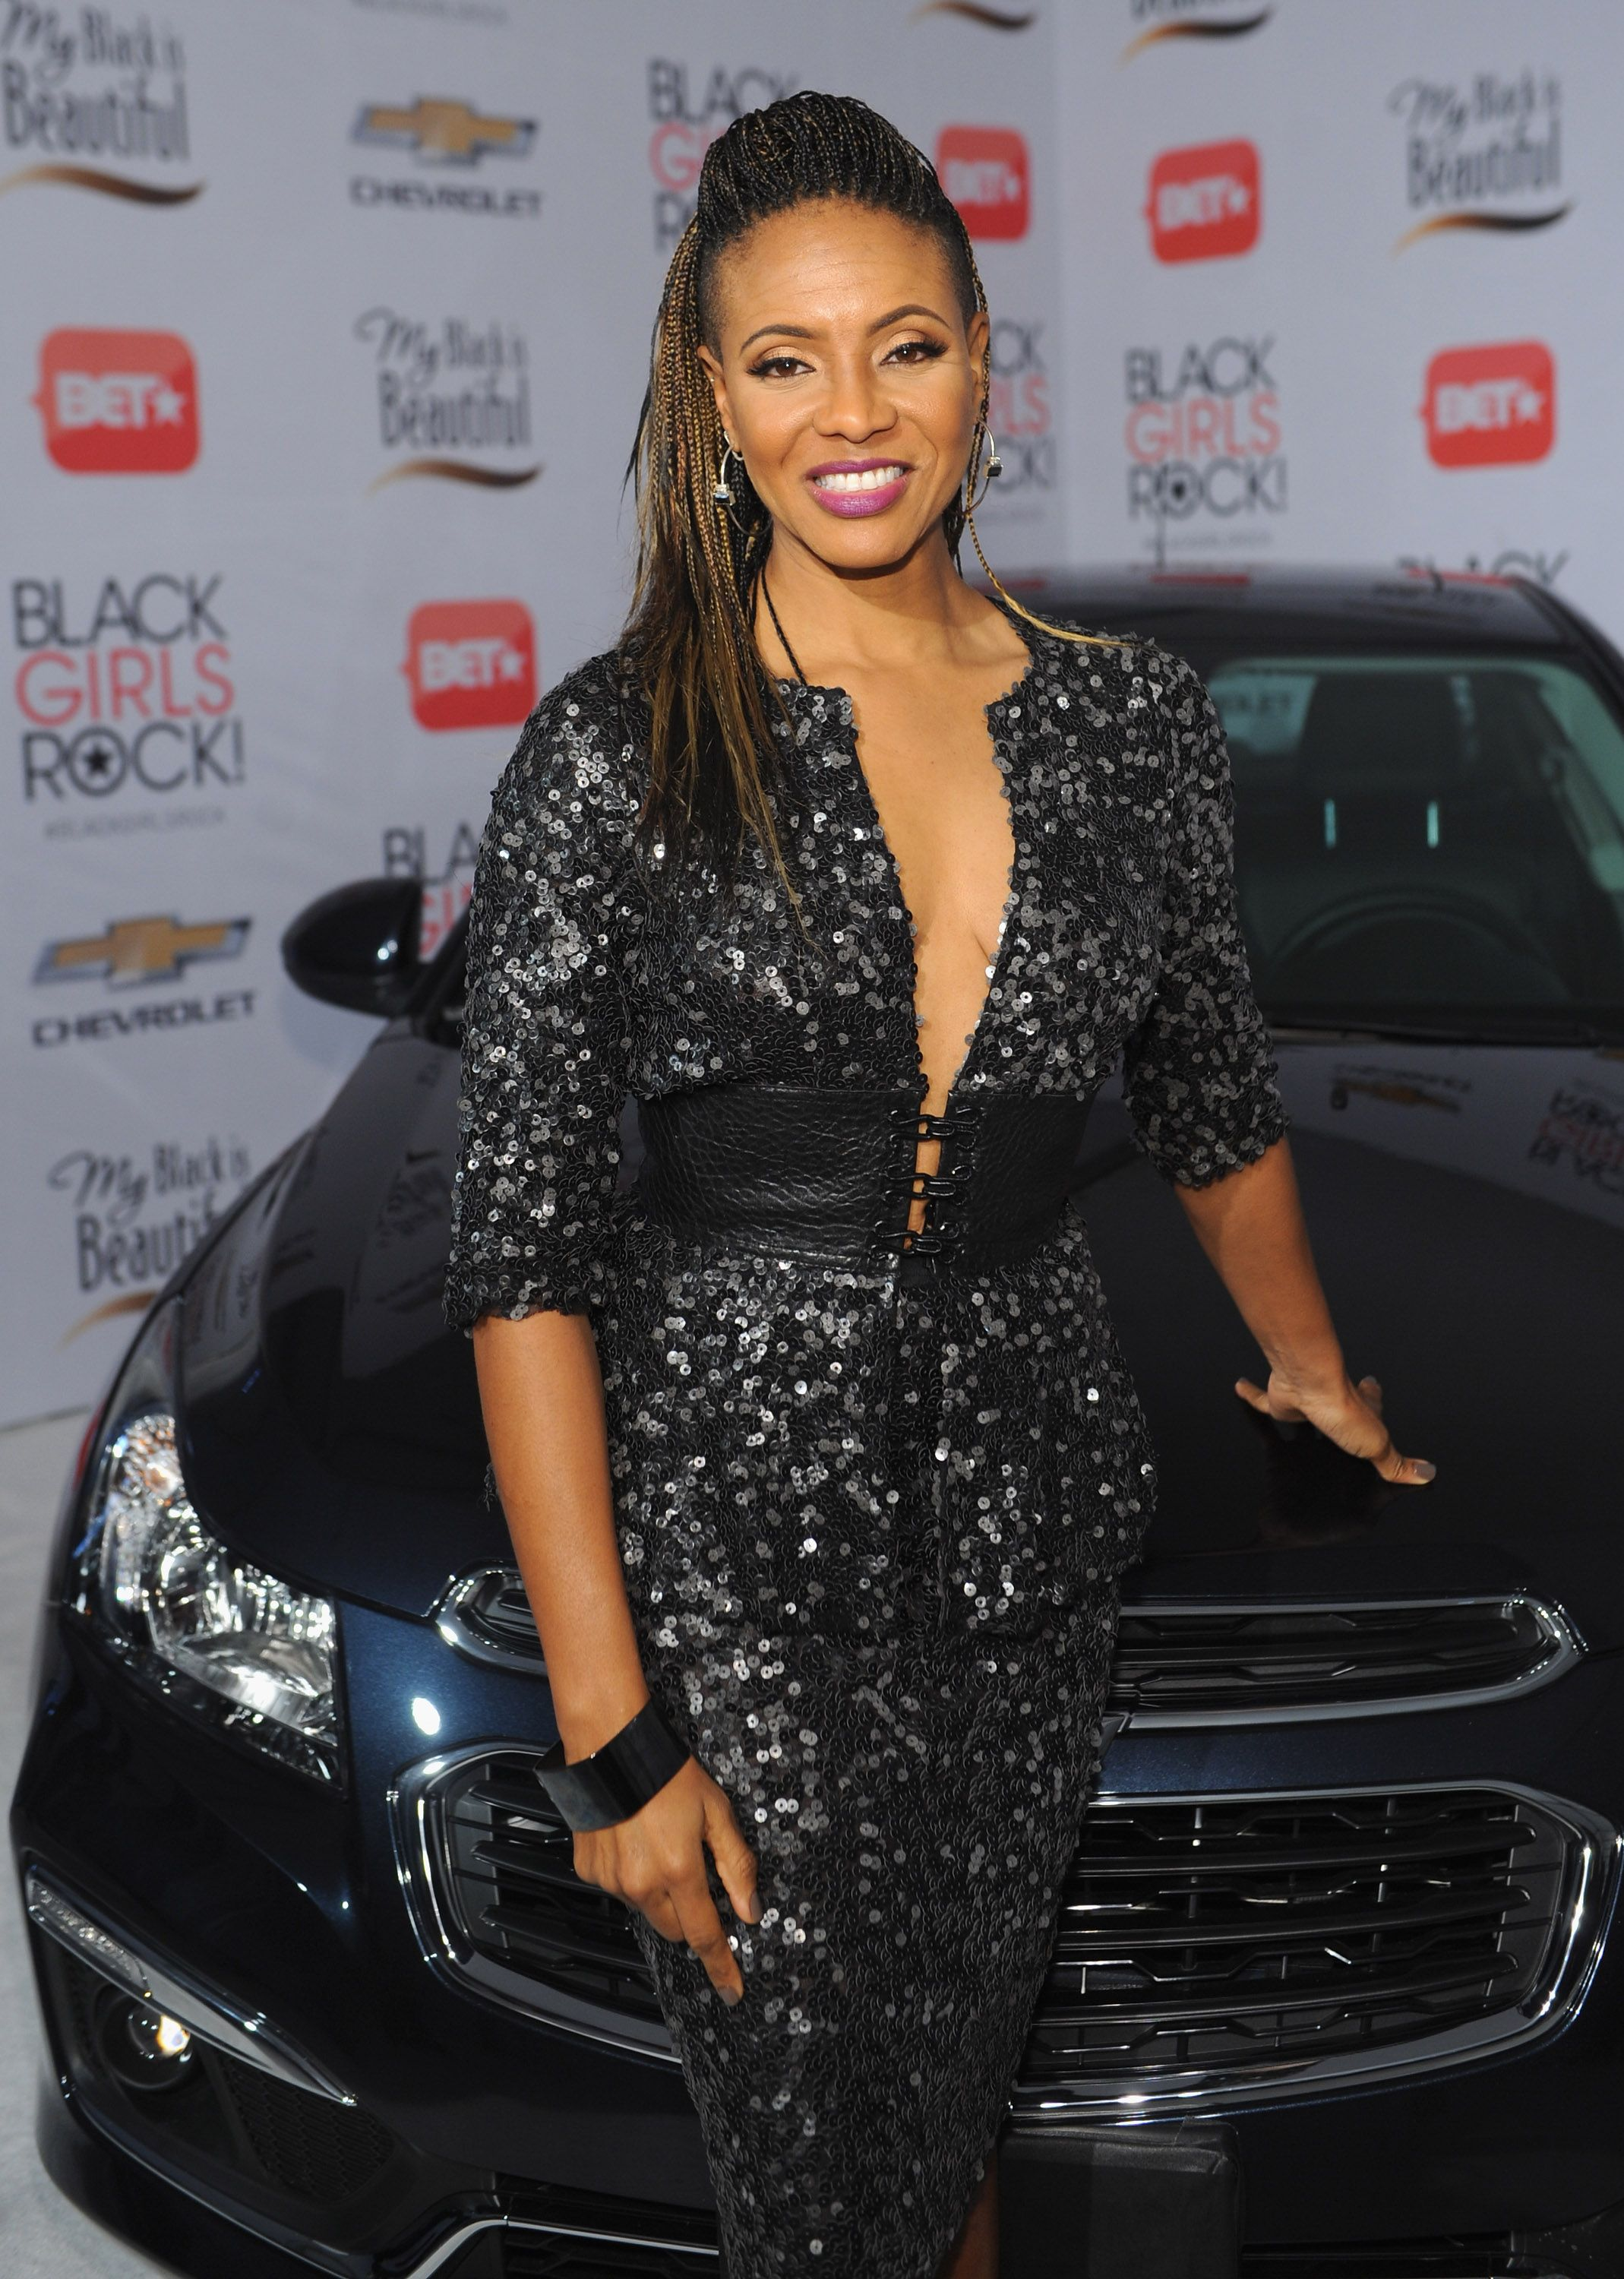 MC Lyte Pictures - Arrivals at the BET Awards - Zimbio